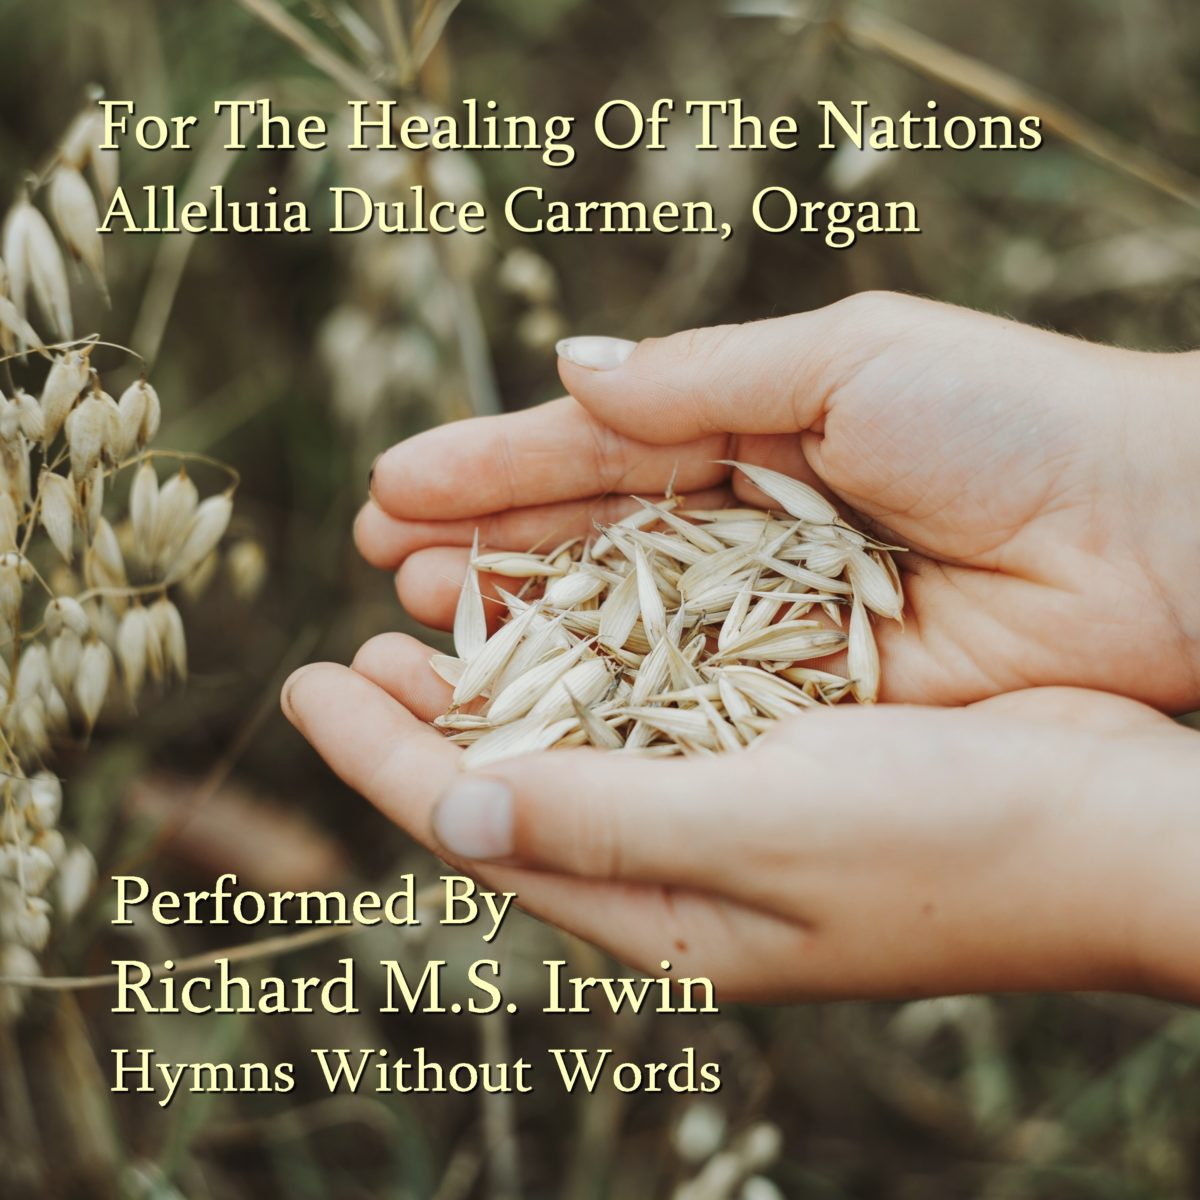 For The Healing Of The Nations (Alleluia Dulce Carmen – 4 Verses) – Organ